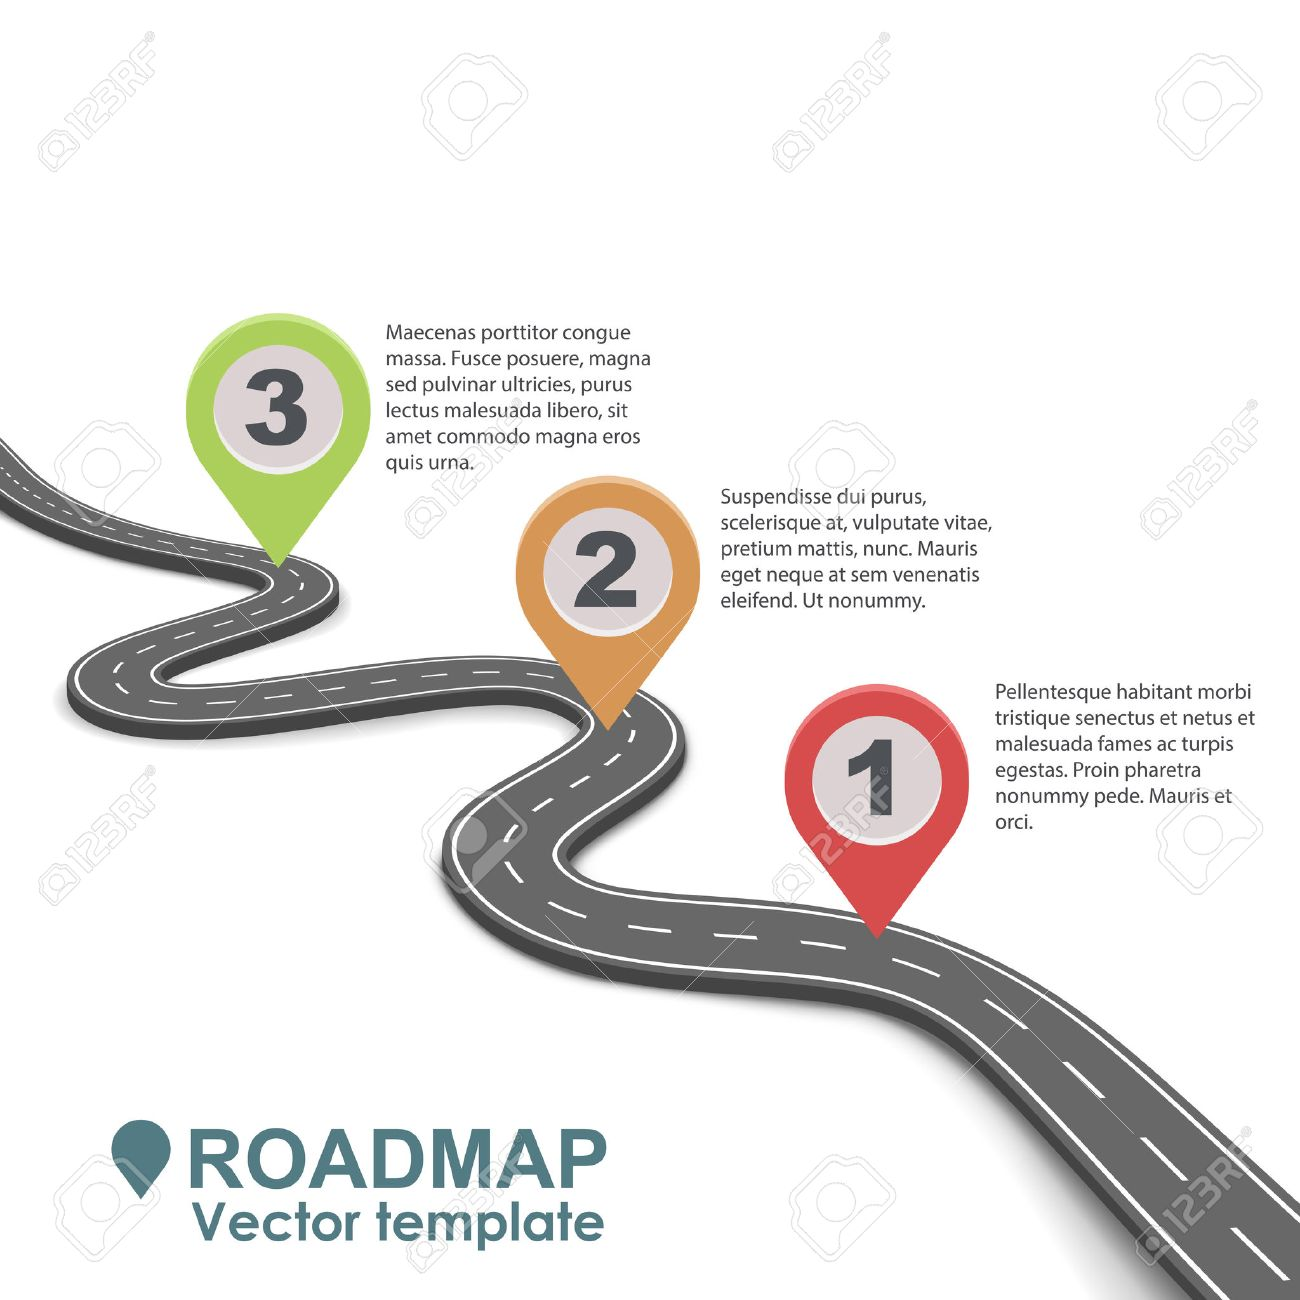 Abstract business roadmap infographic with color pointers vector template. Simple road isolated on white background. - 72945402